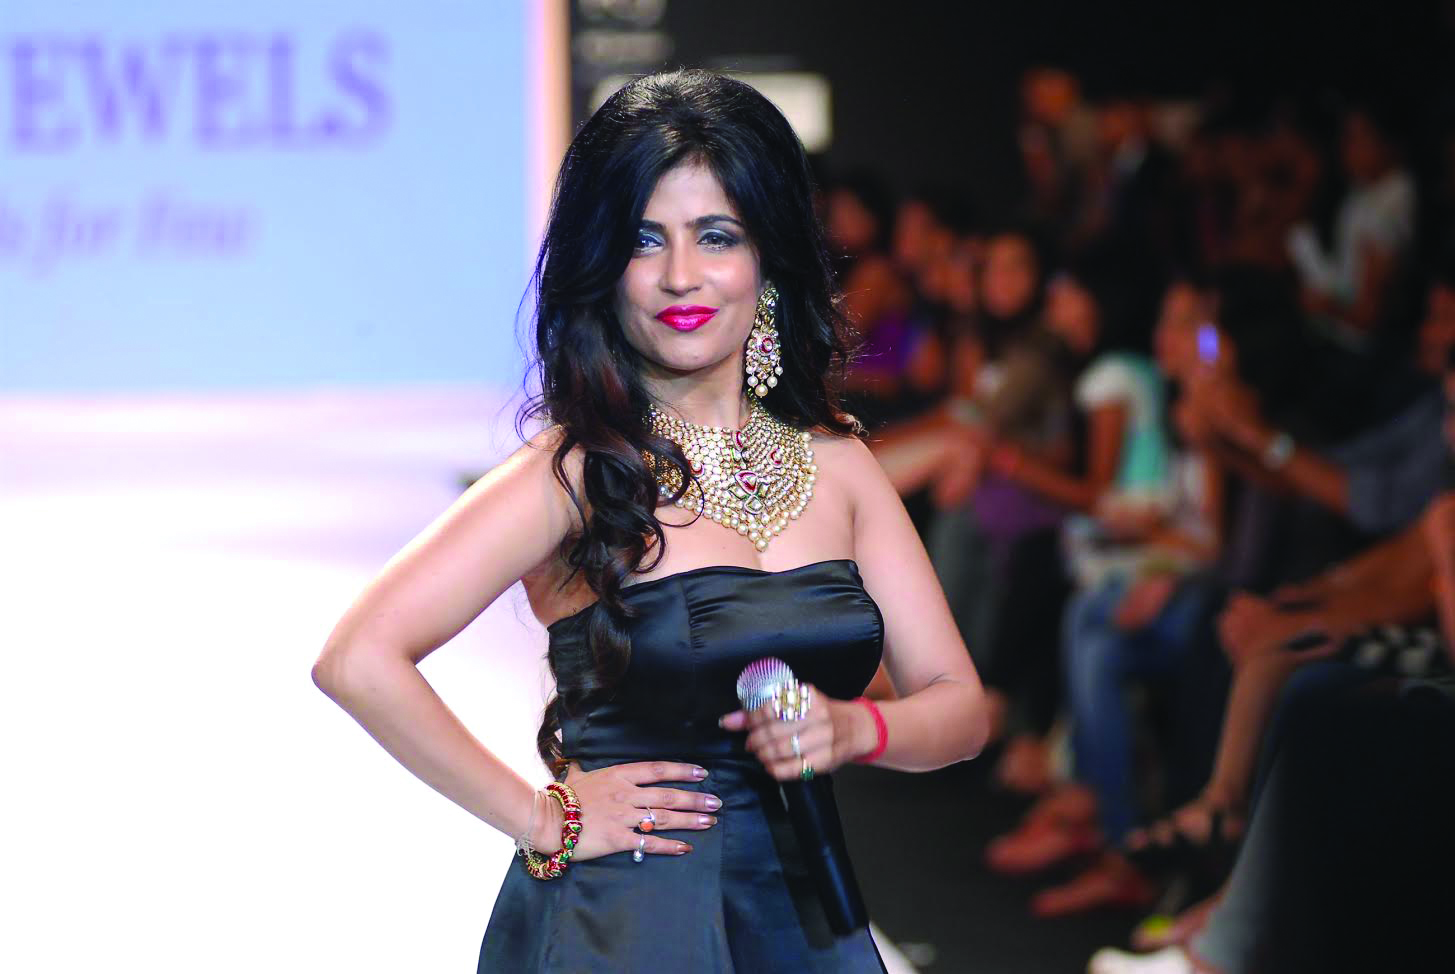 Singer Shibani Kashyap displays the jewellery by designer Alka Kumar during the India International Jewellery Week (IIJW) in Mumbai, on July 15, 2014. (Photo: IANS)